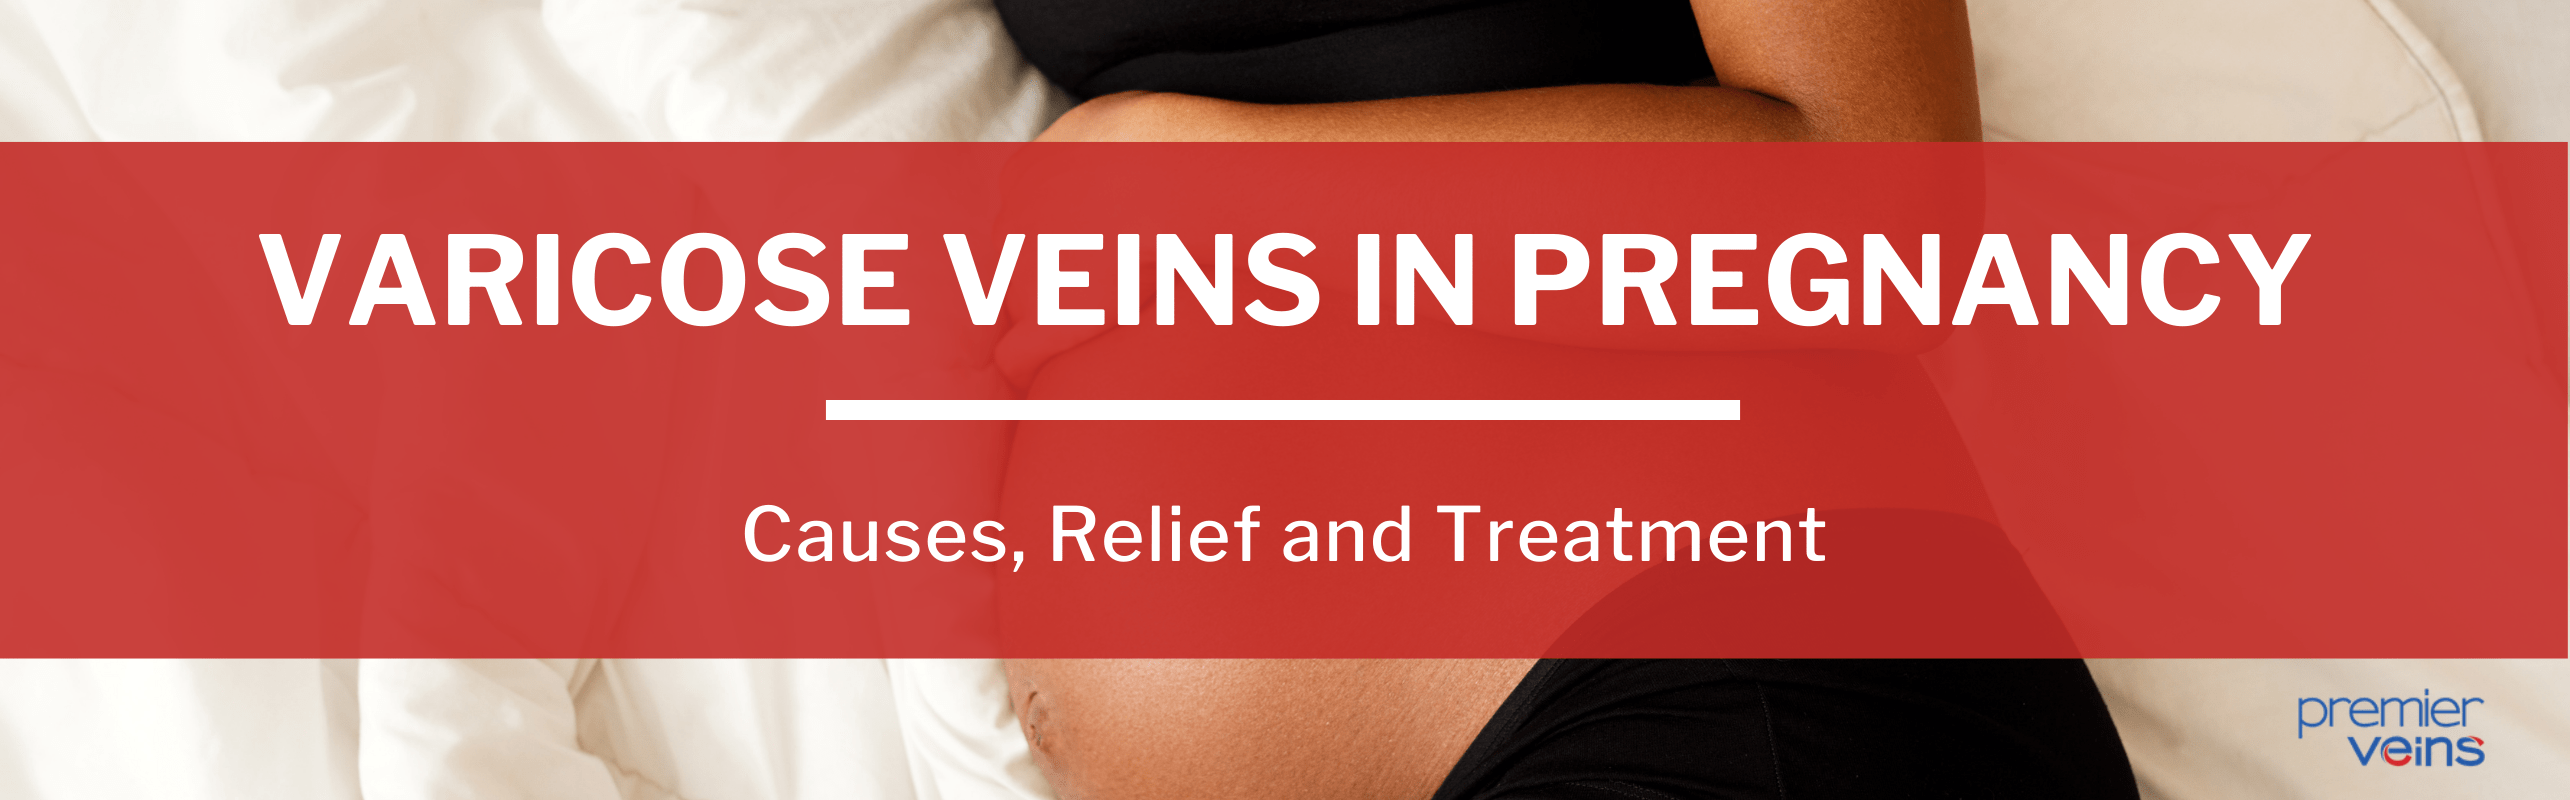 Varicose Veins in Pregnancy: Causes, Relief and Treatment